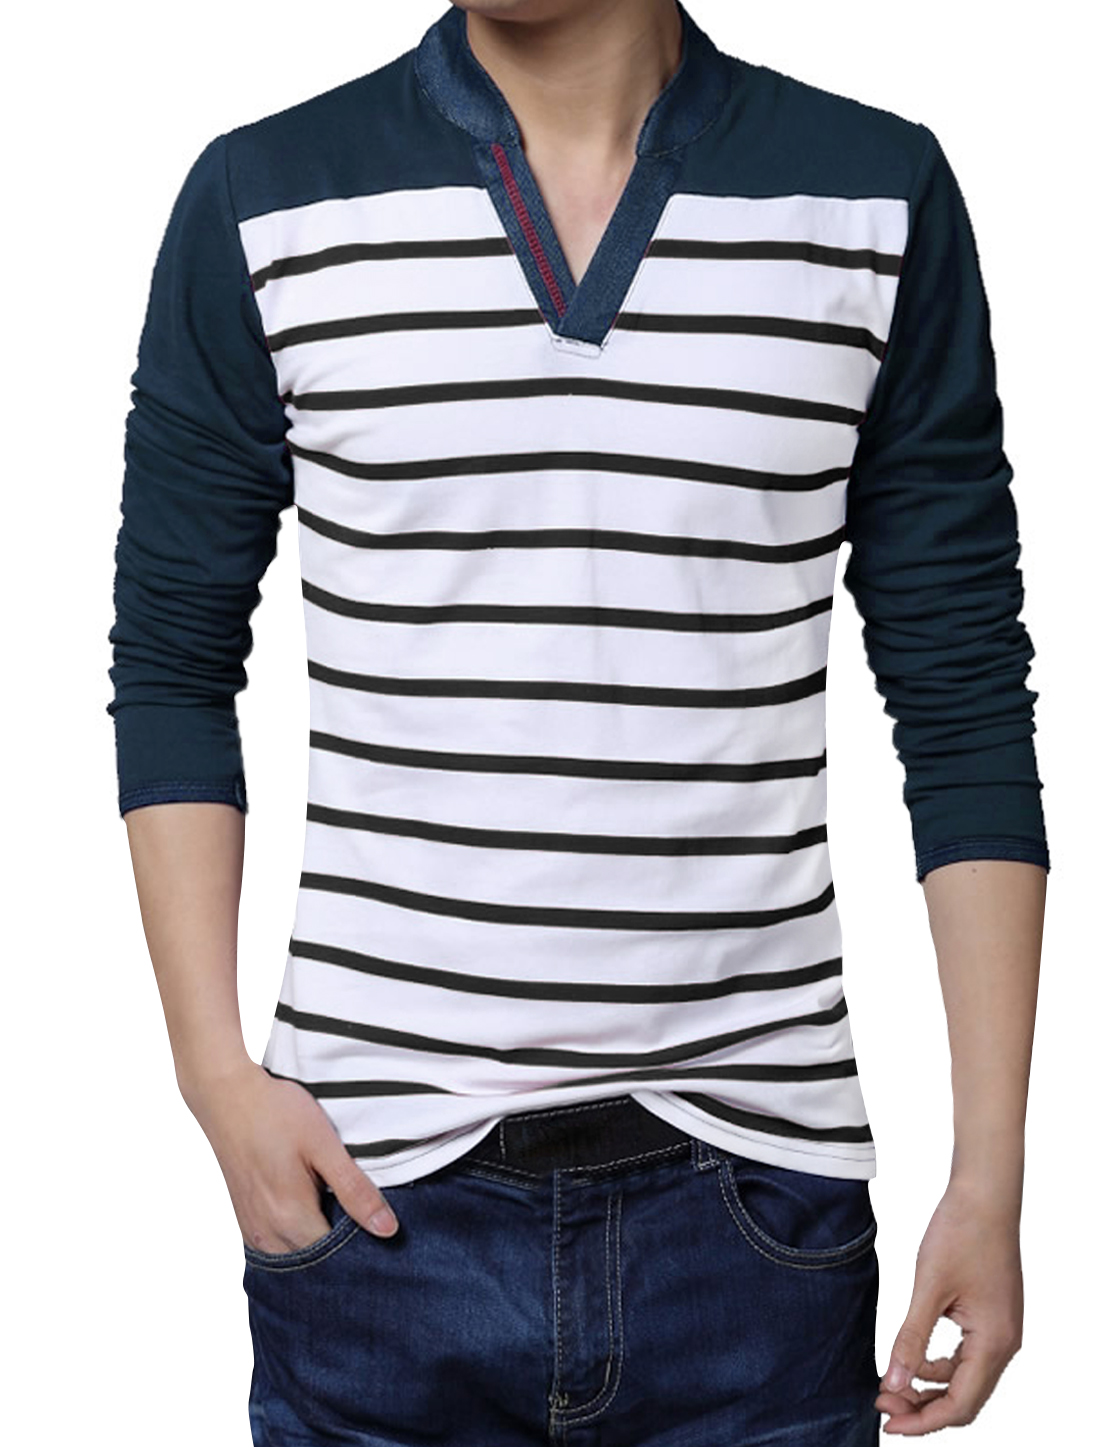 Men Long Sleeve Panel Design Stripes Shirt Navy Blue Black M